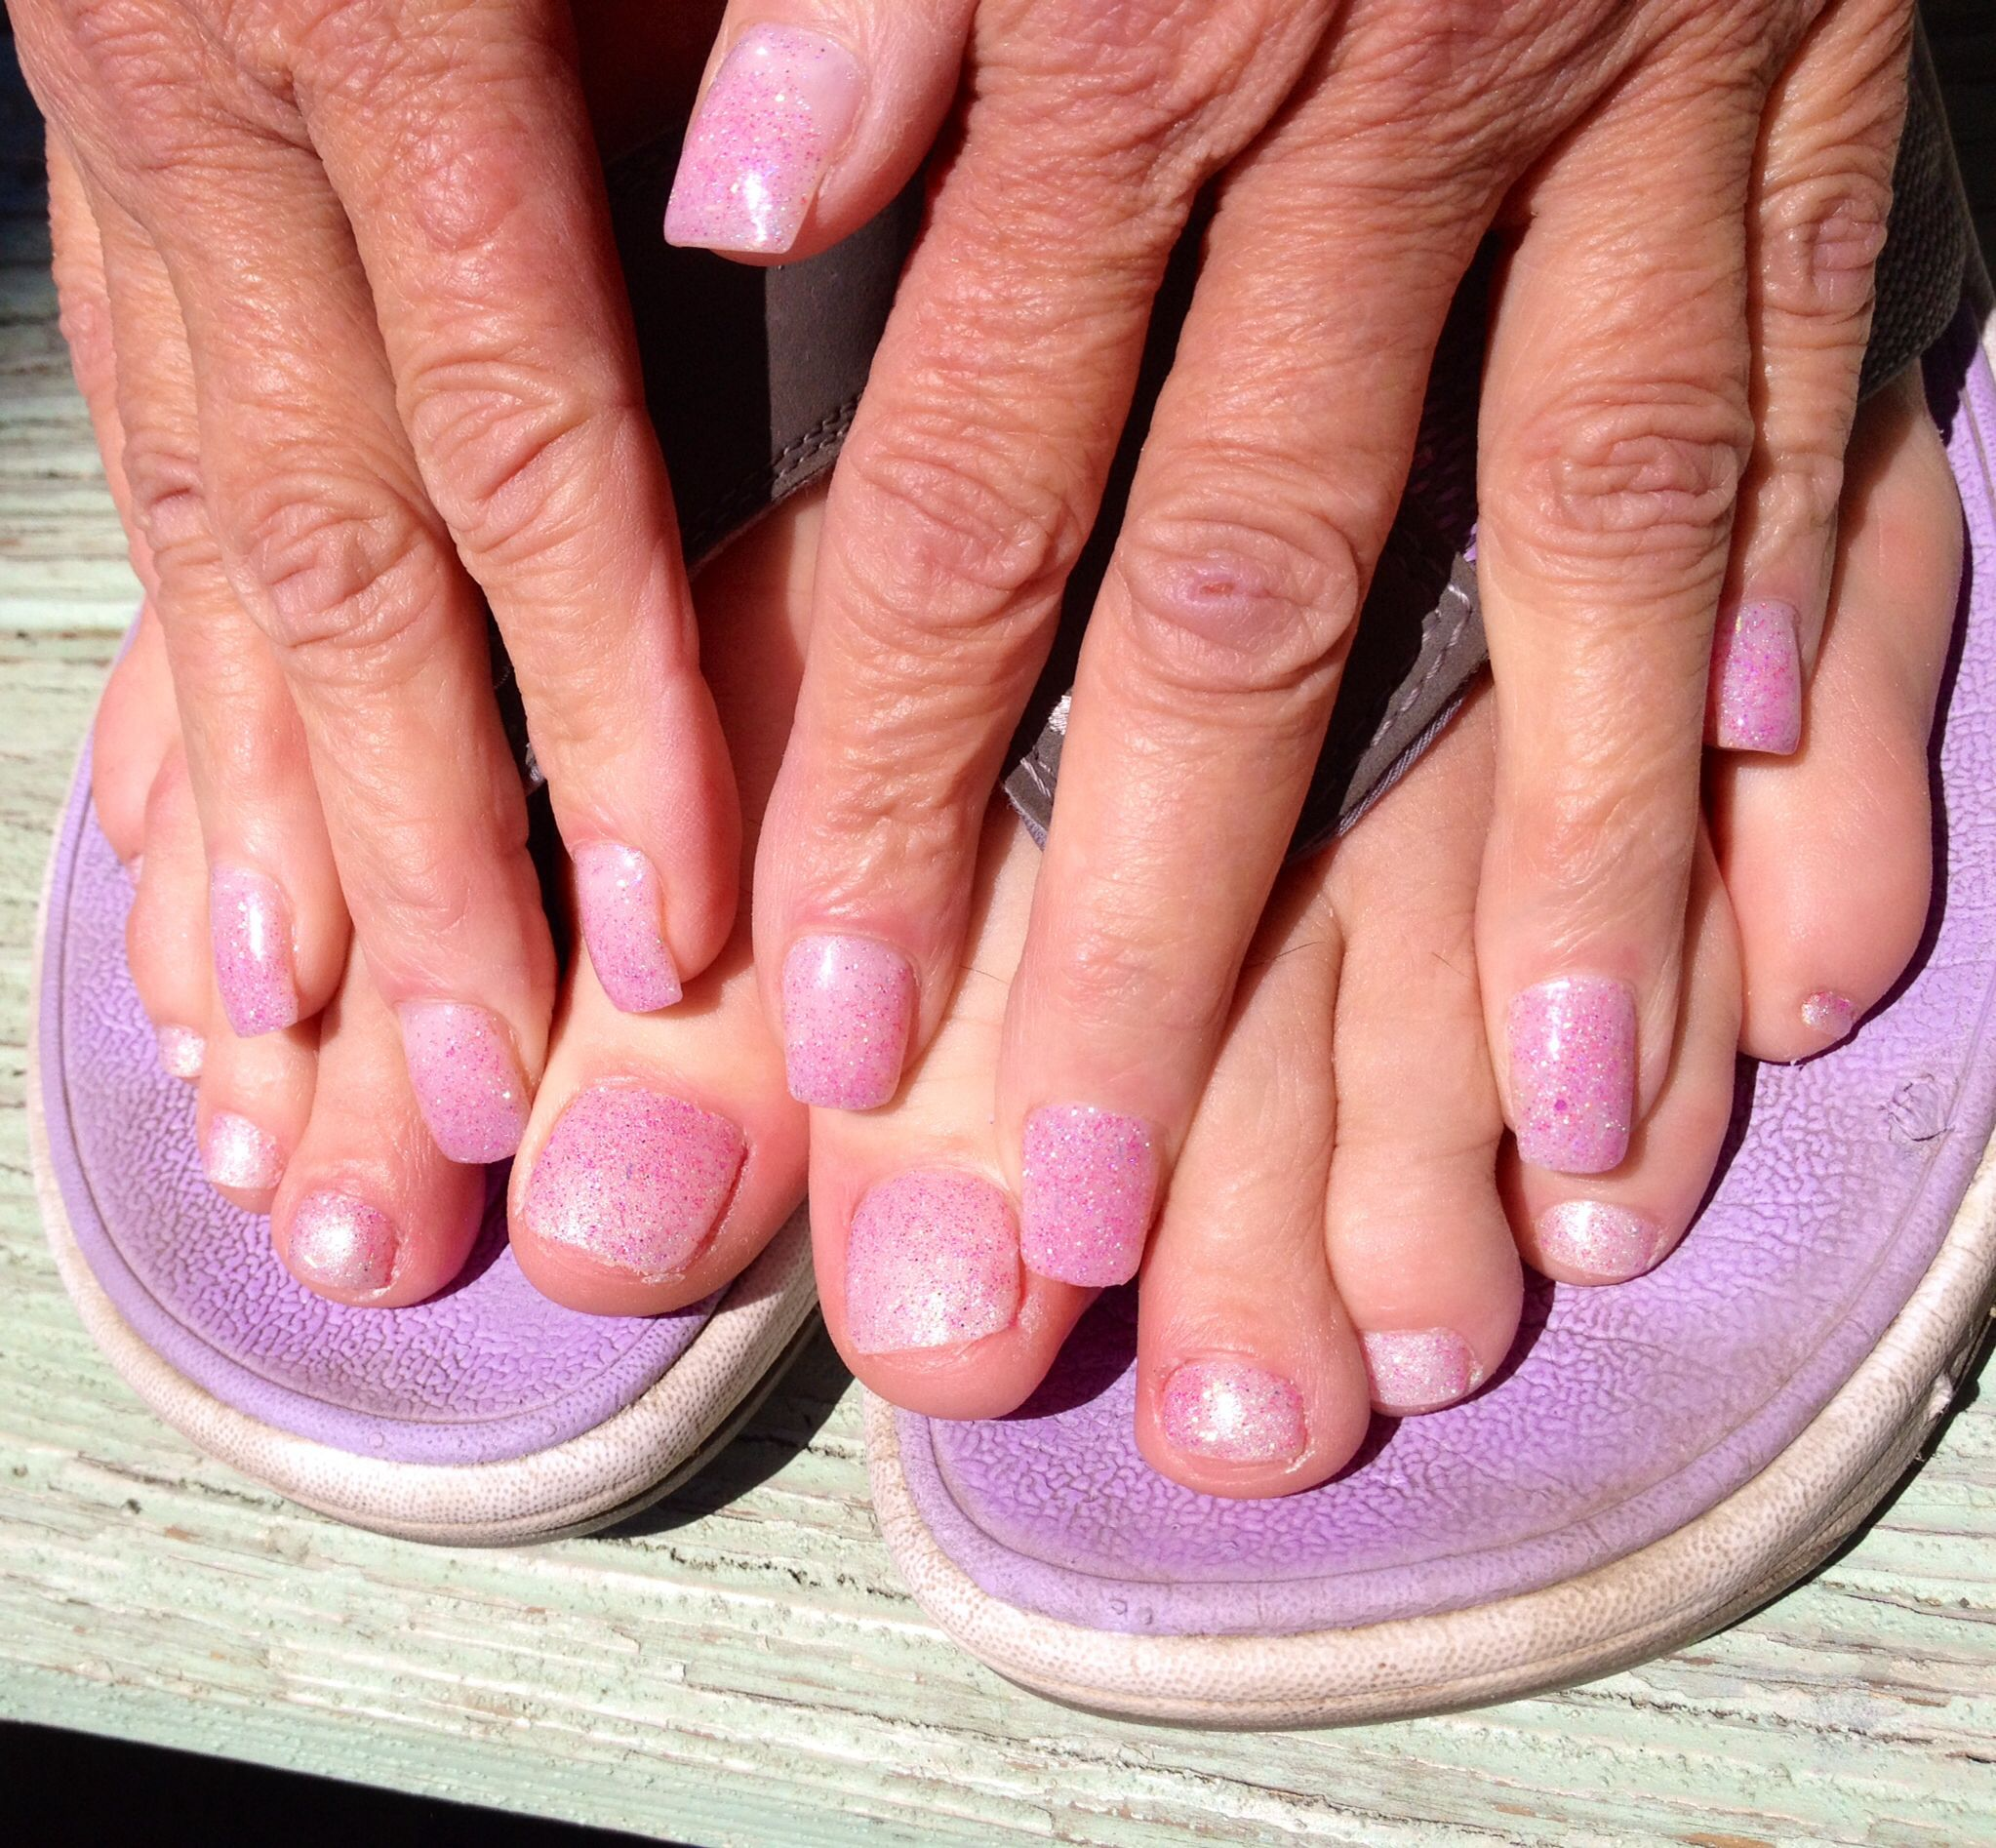 Acrylic nails matched with gel toes